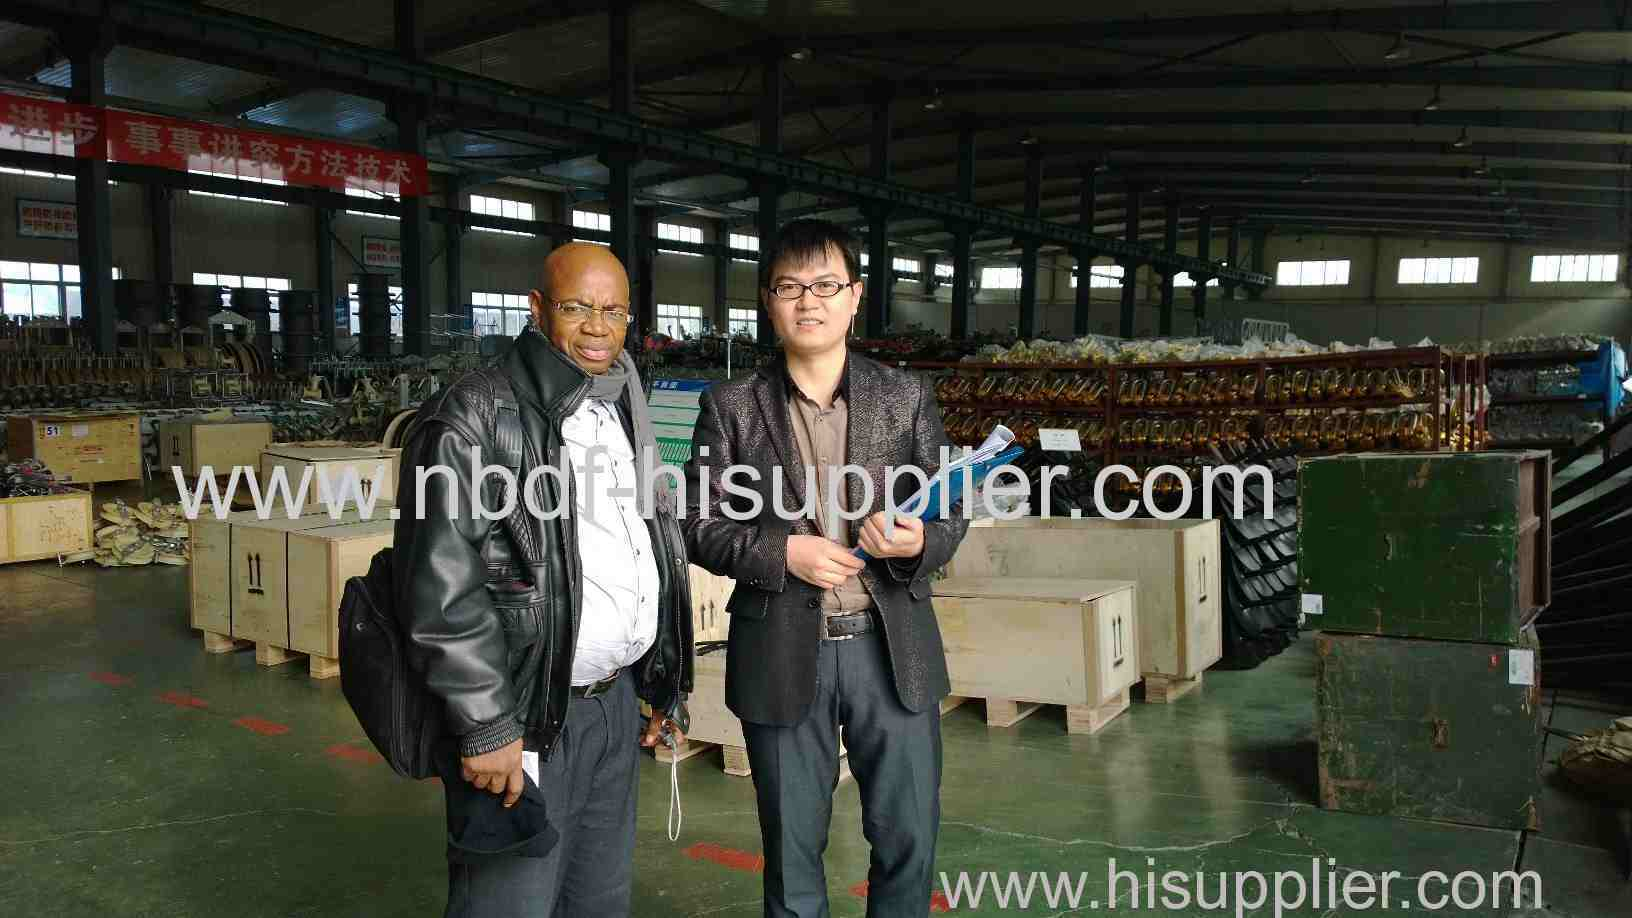 Customer from africa visited our factory and order the equipment